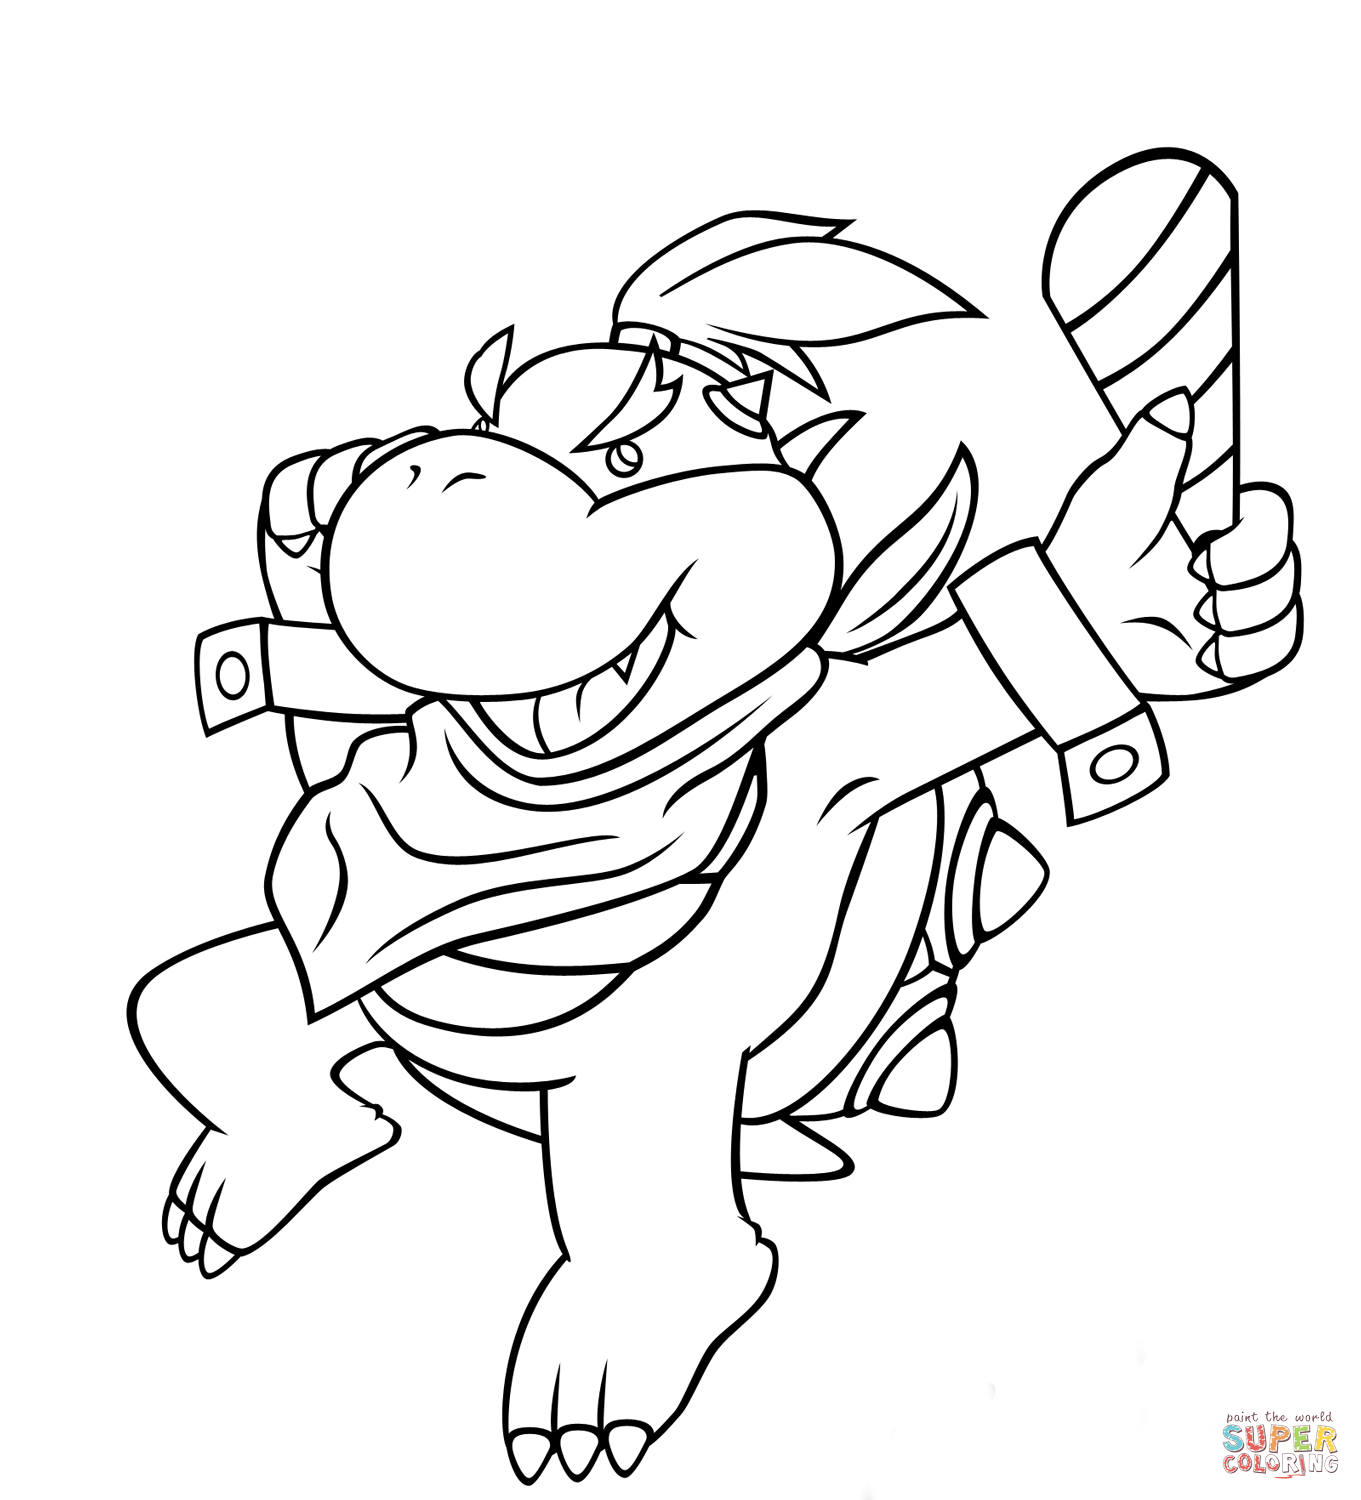 Jeffy Coloring Pages - Bowser Jr. coloring page | Free Printable Coloring Pages